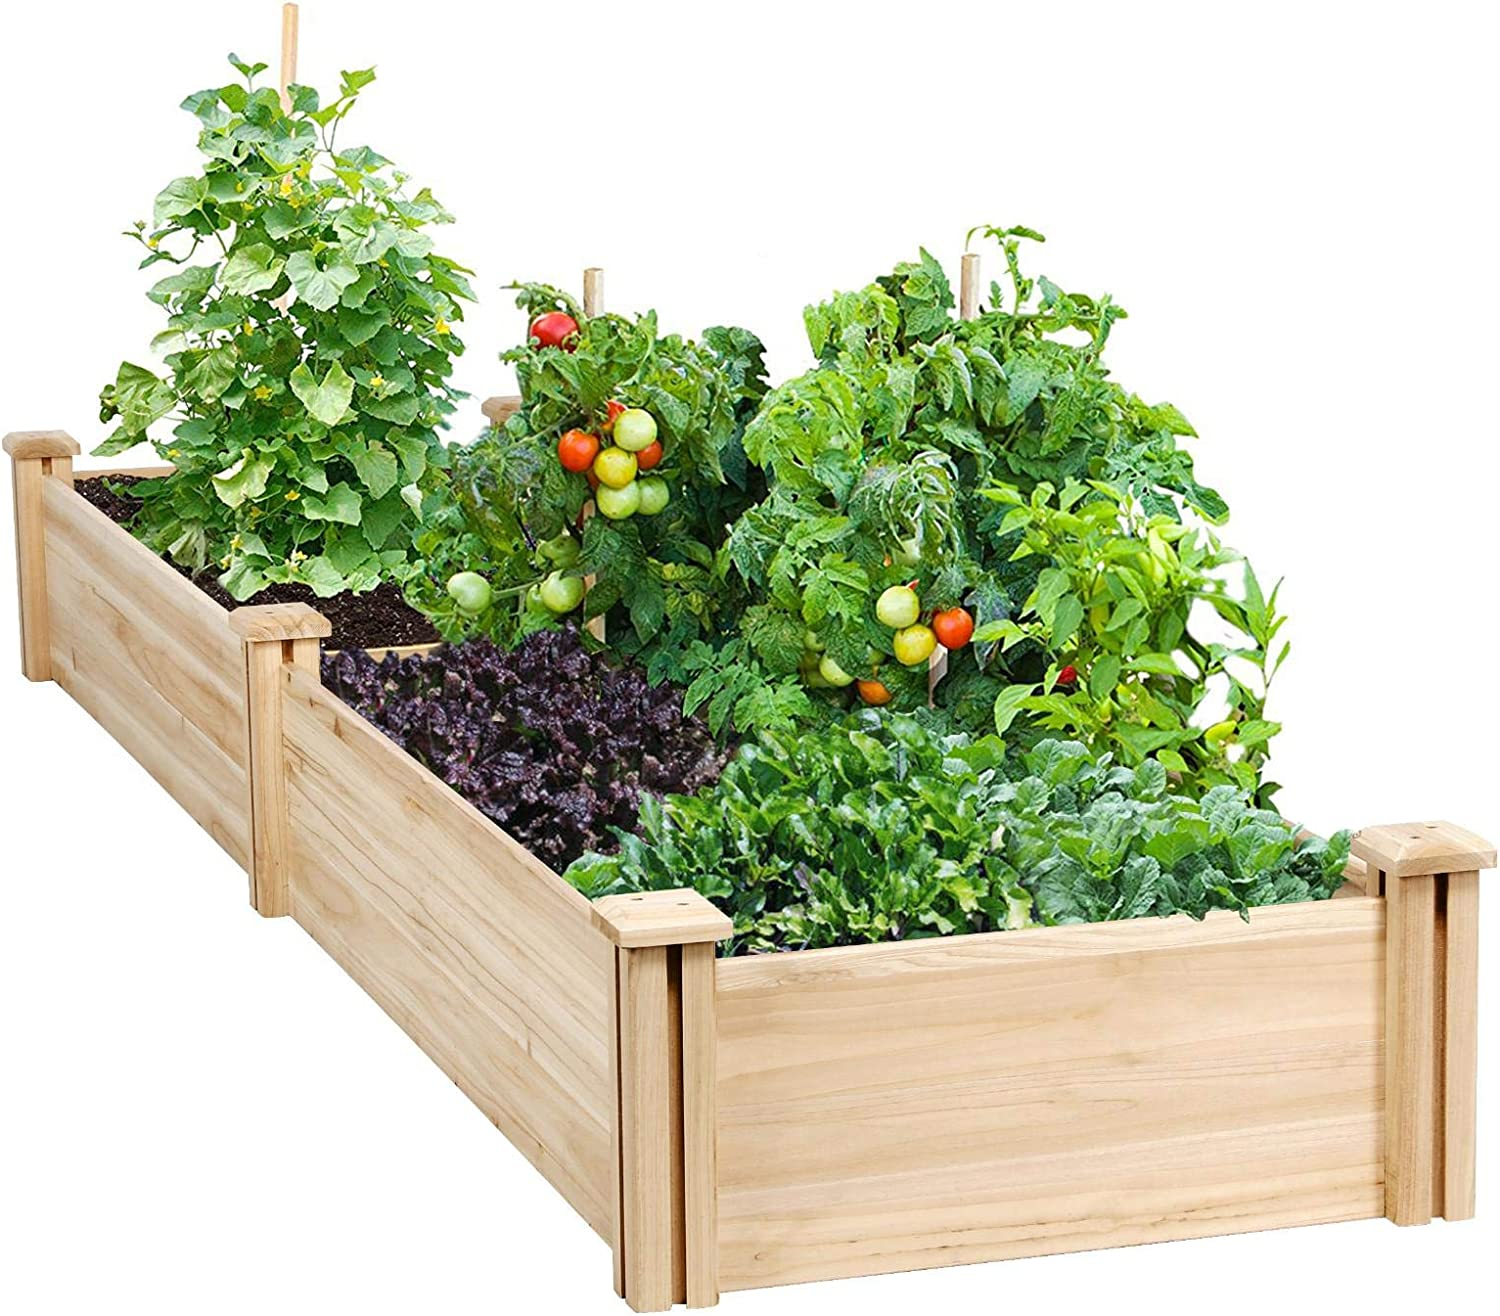 Amazon Com Yaheetech Raised Garden Bed Kit Wooden Elevated Planter Garden Box For Vegetable Flower Herb Outdoor Solid Wood 96 7 X 24 6 X 10 6inches Garden Outdoor